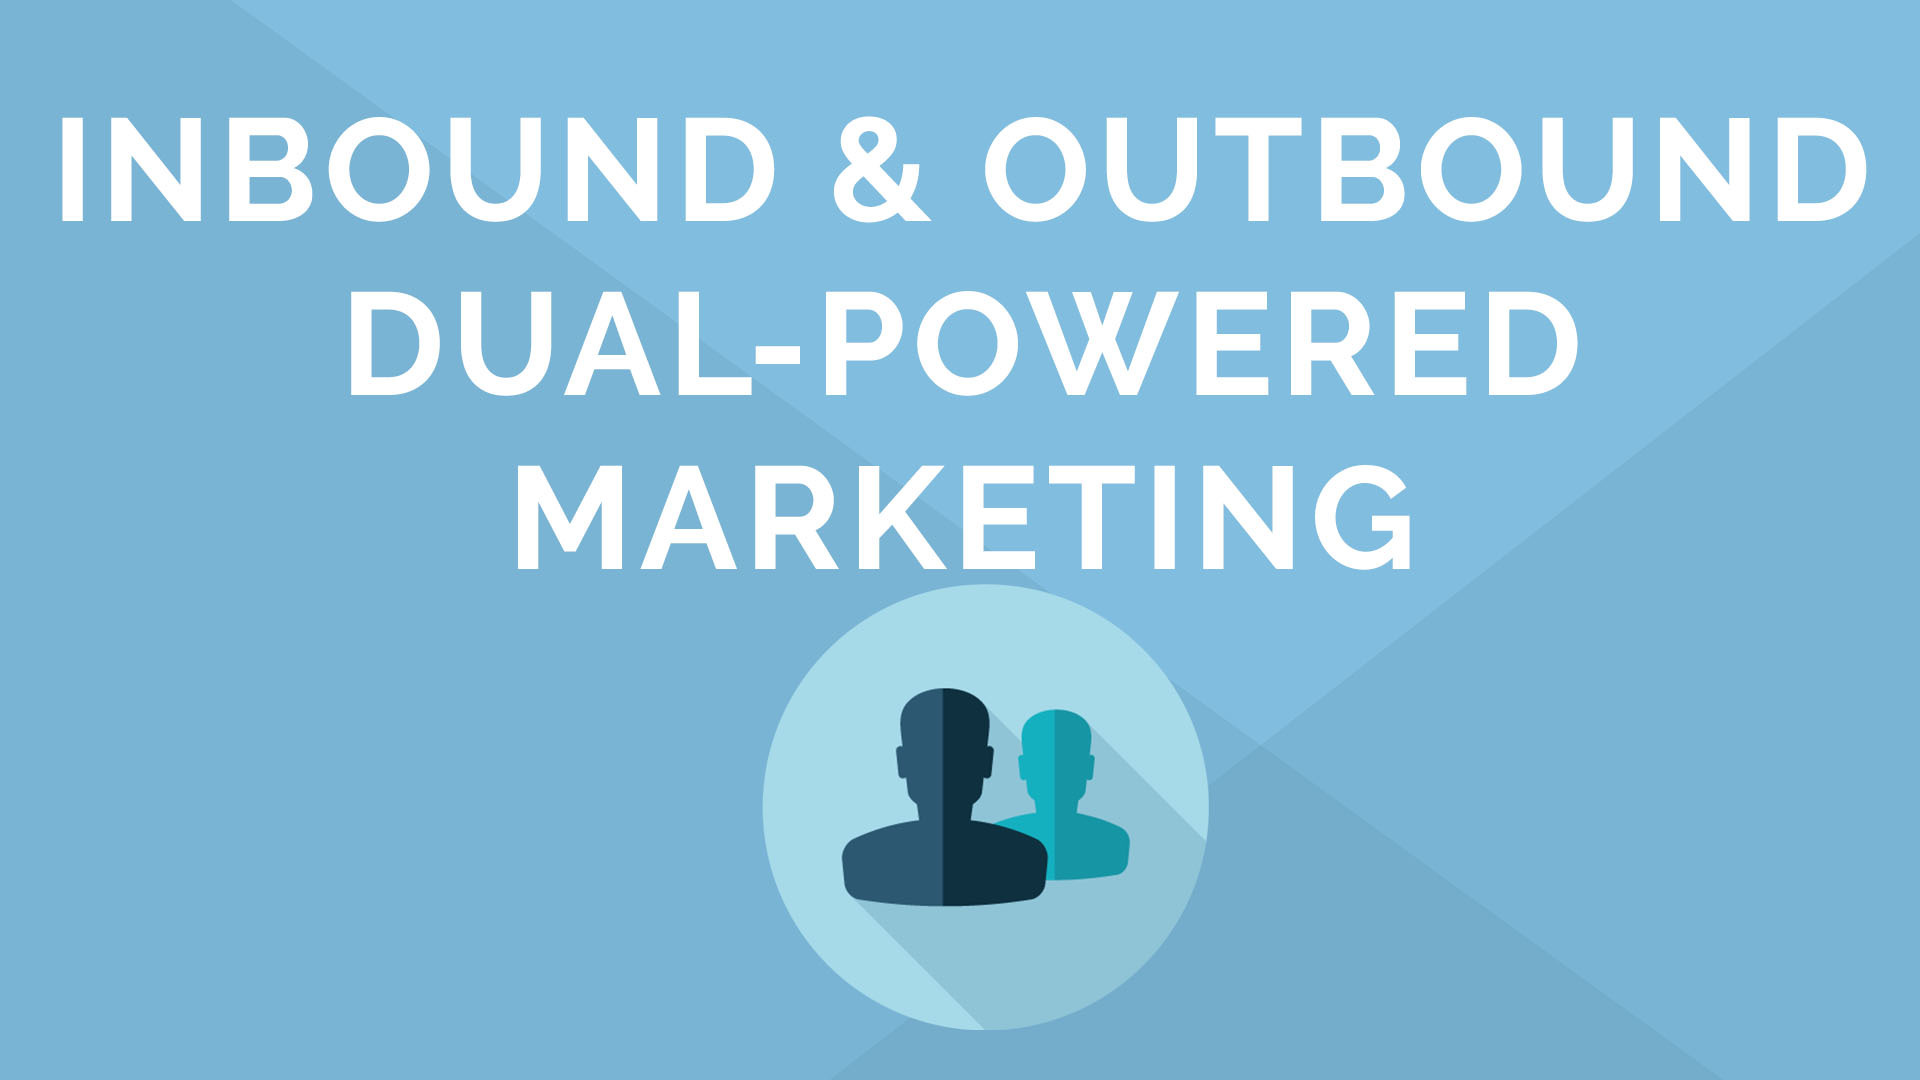 Inbound and Outbound: Activate Your Dual-Powered Marketing in 15 minutes